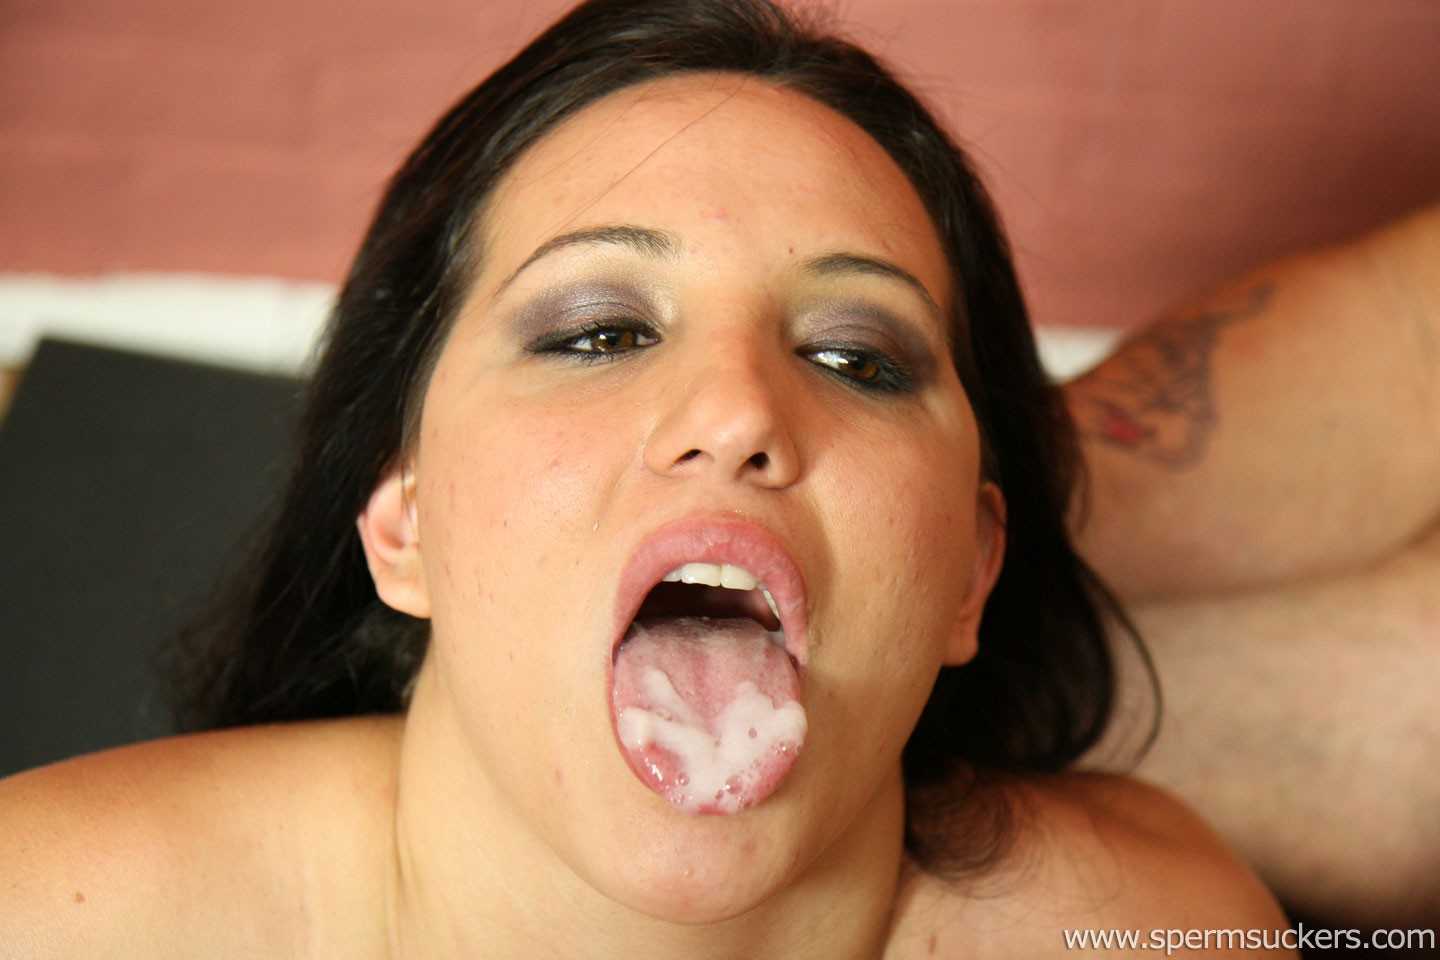 what a milf tastes like – Other